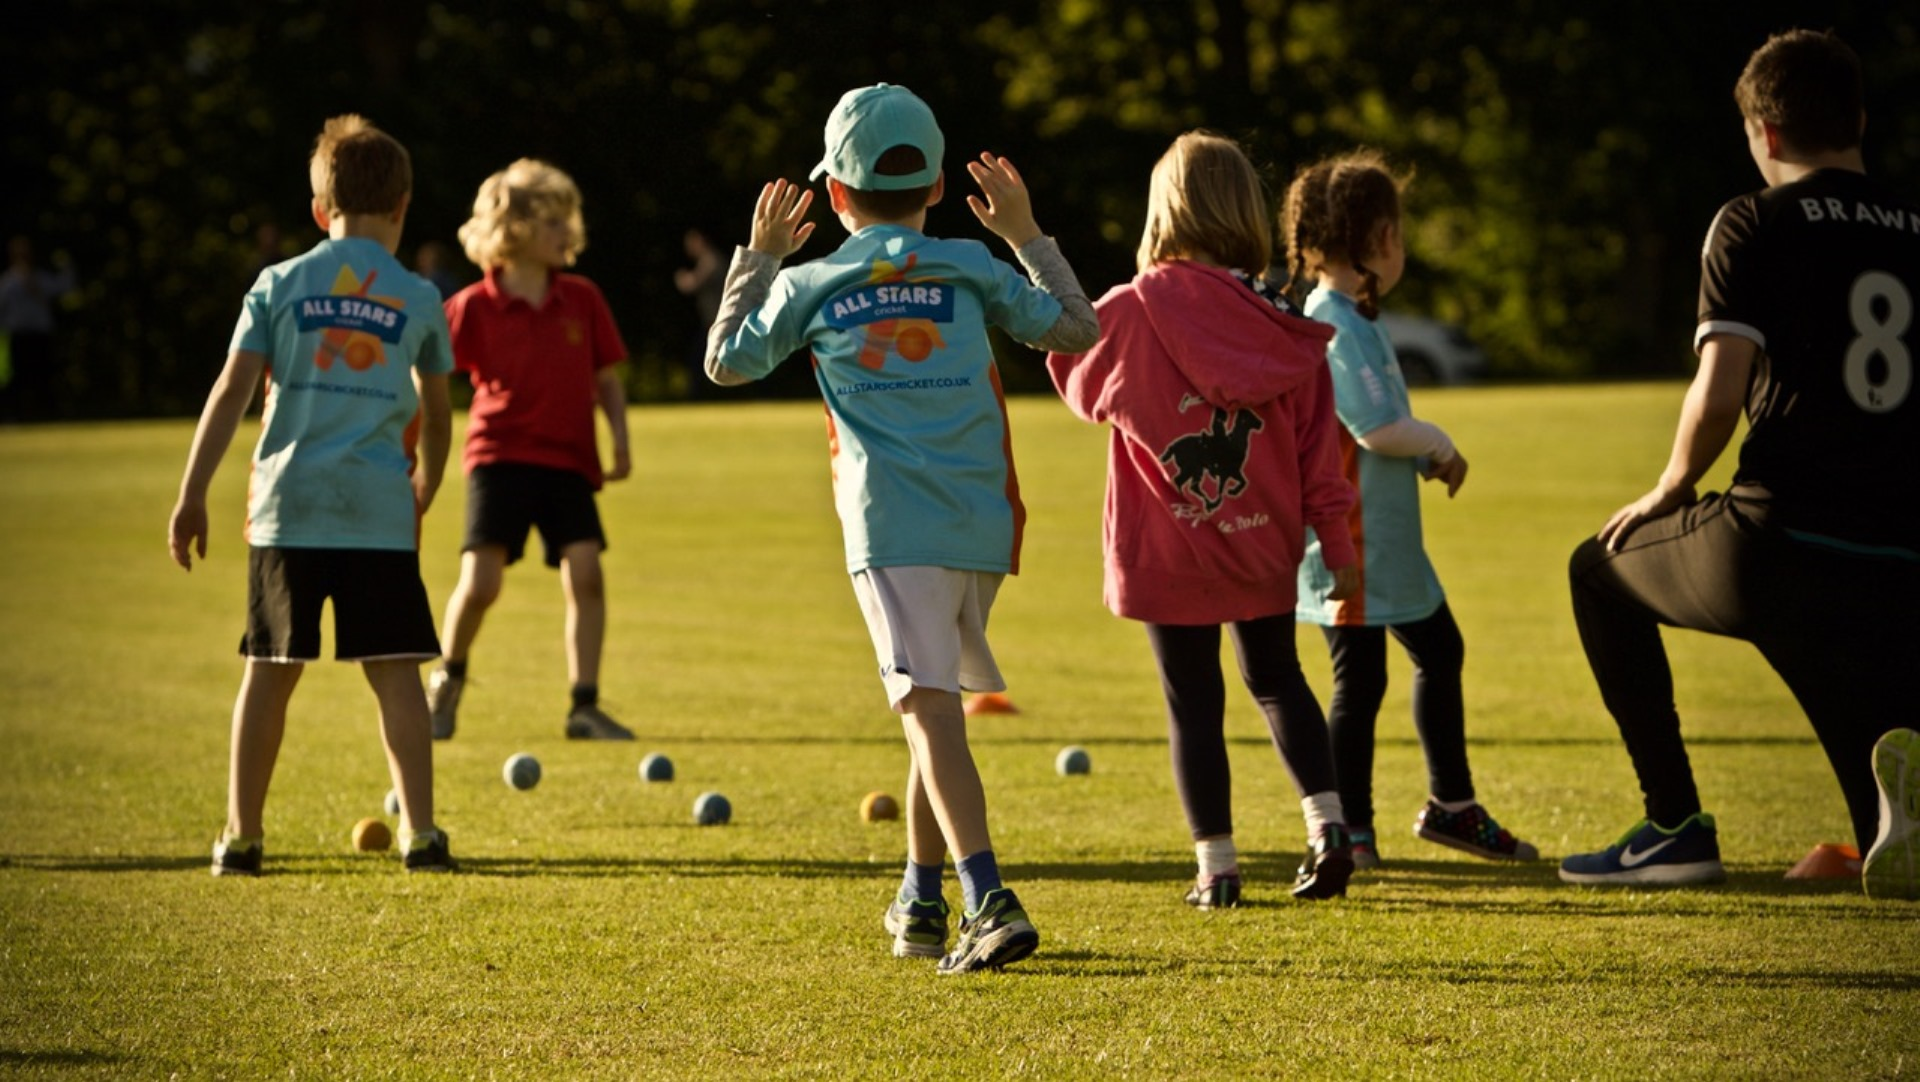 GCB to hold workshops to help clubs develop Under 9s cricket